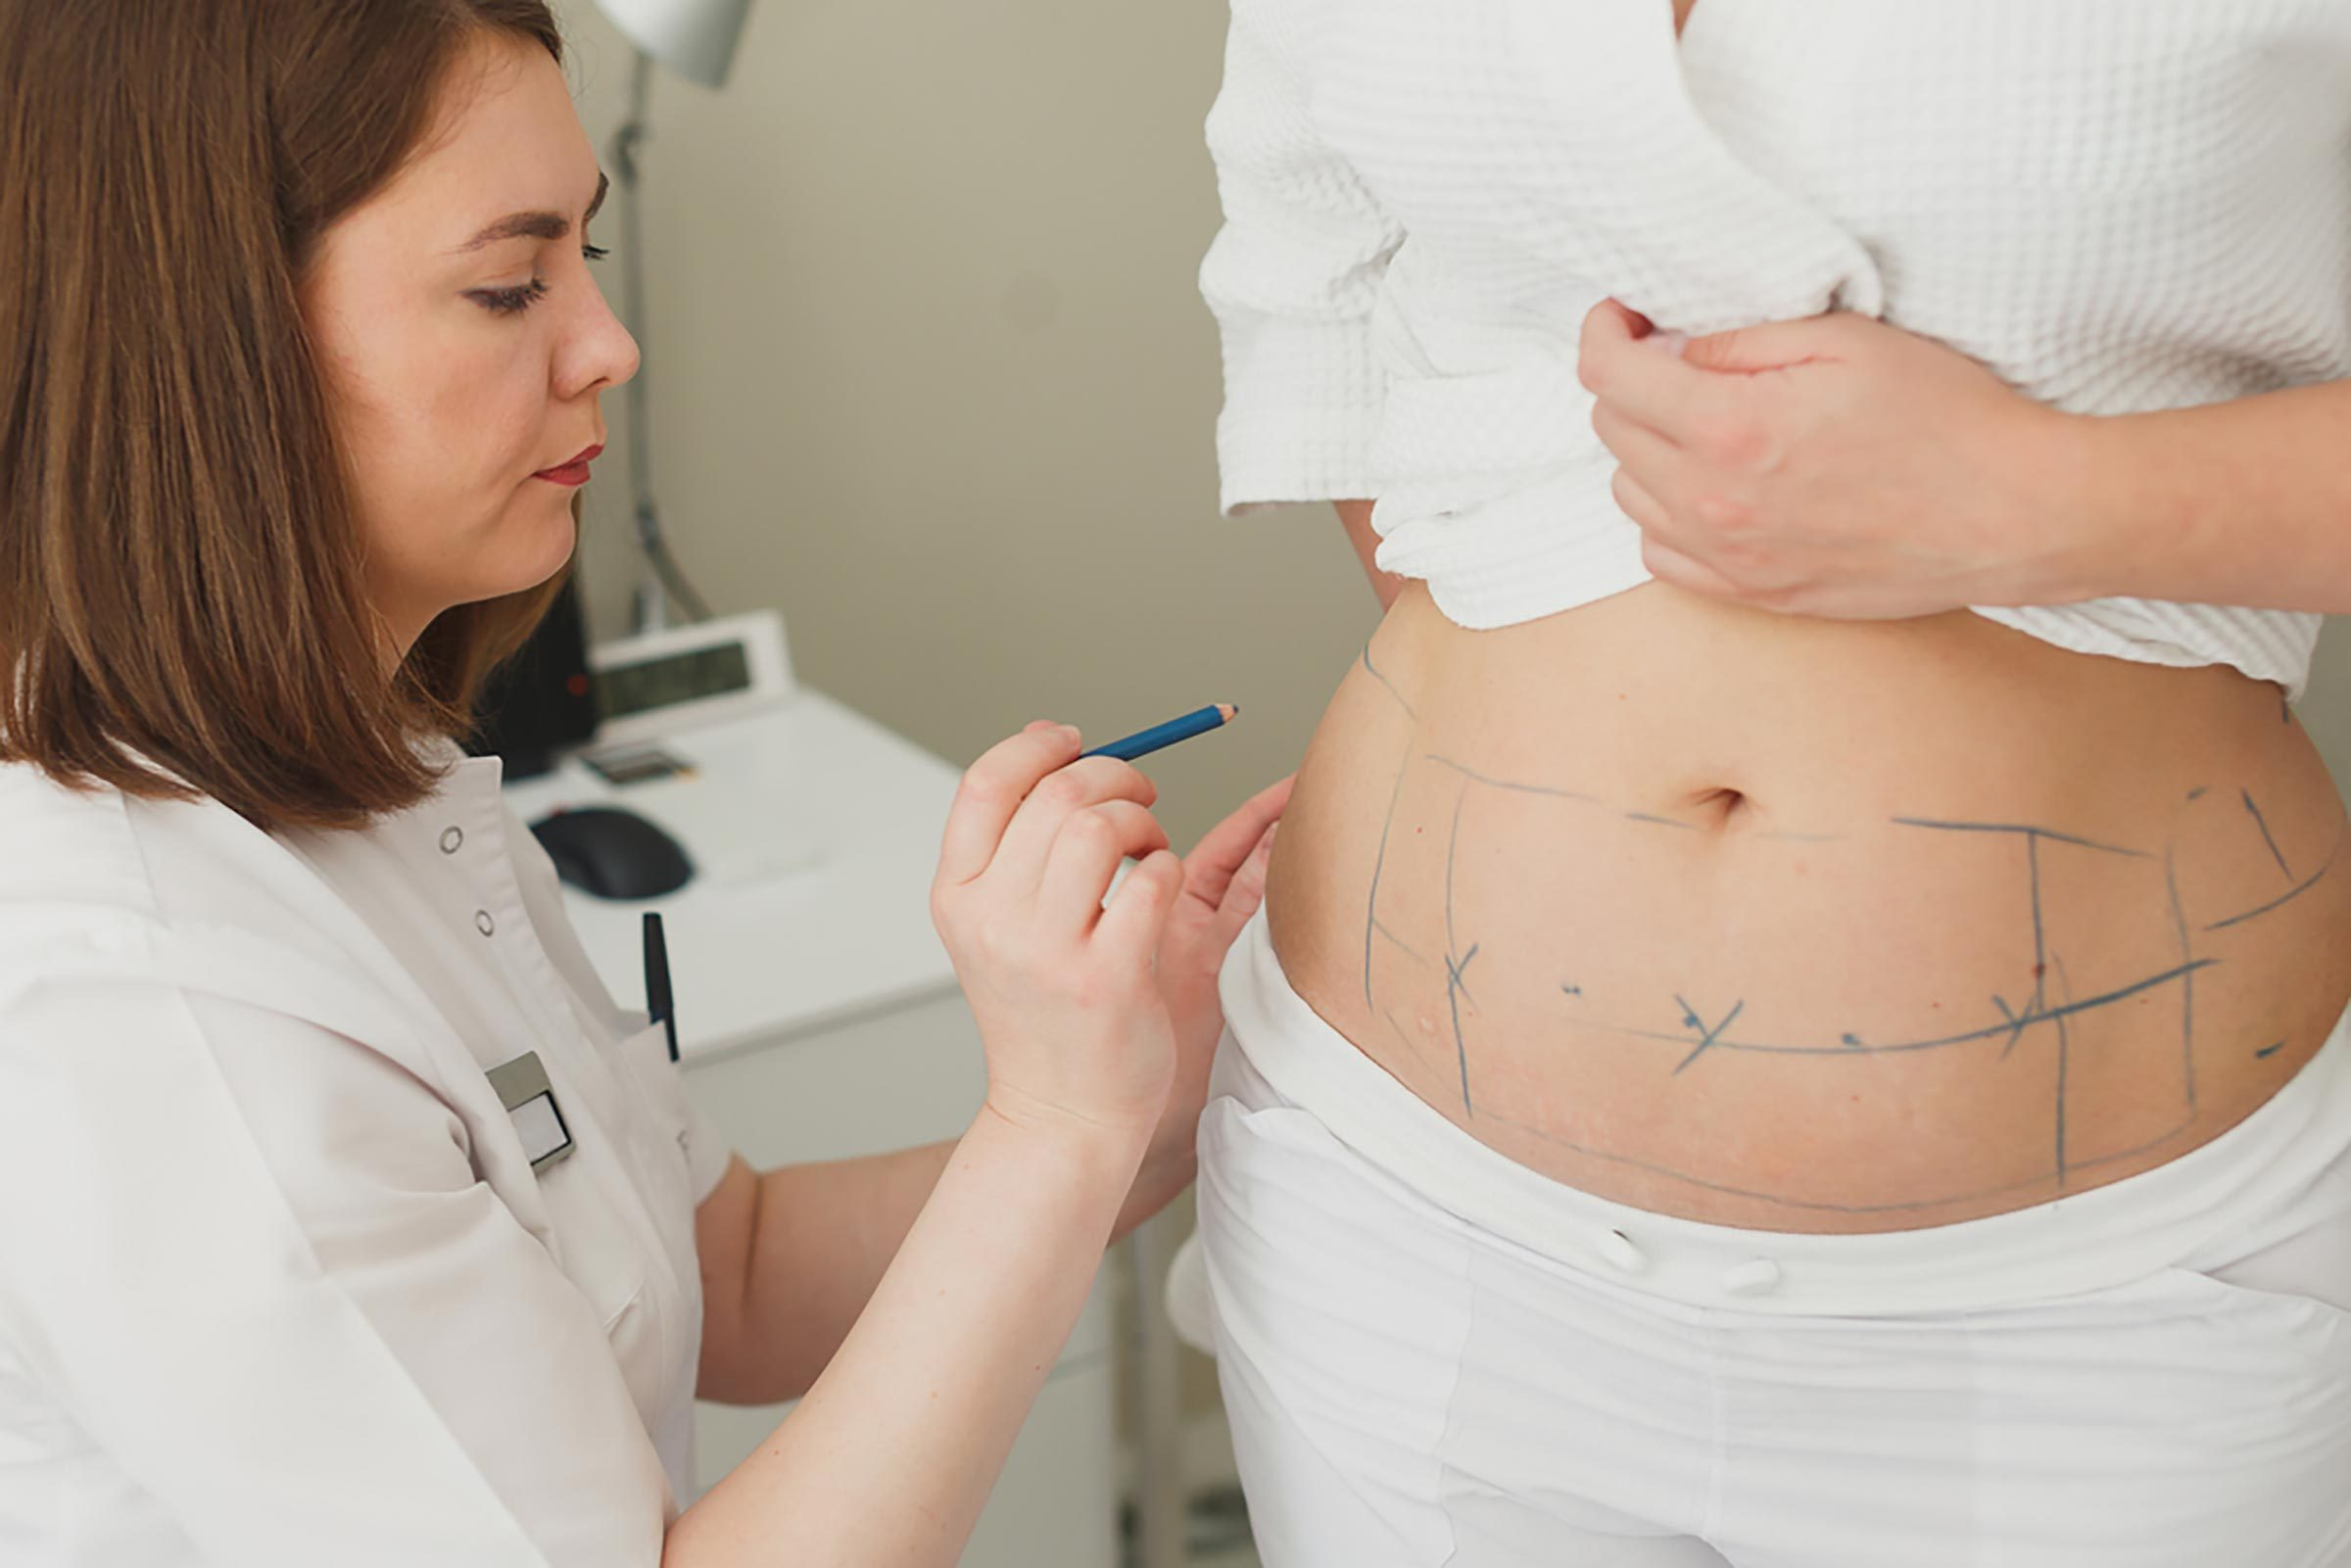 woman marking patient's abdomen for surgery